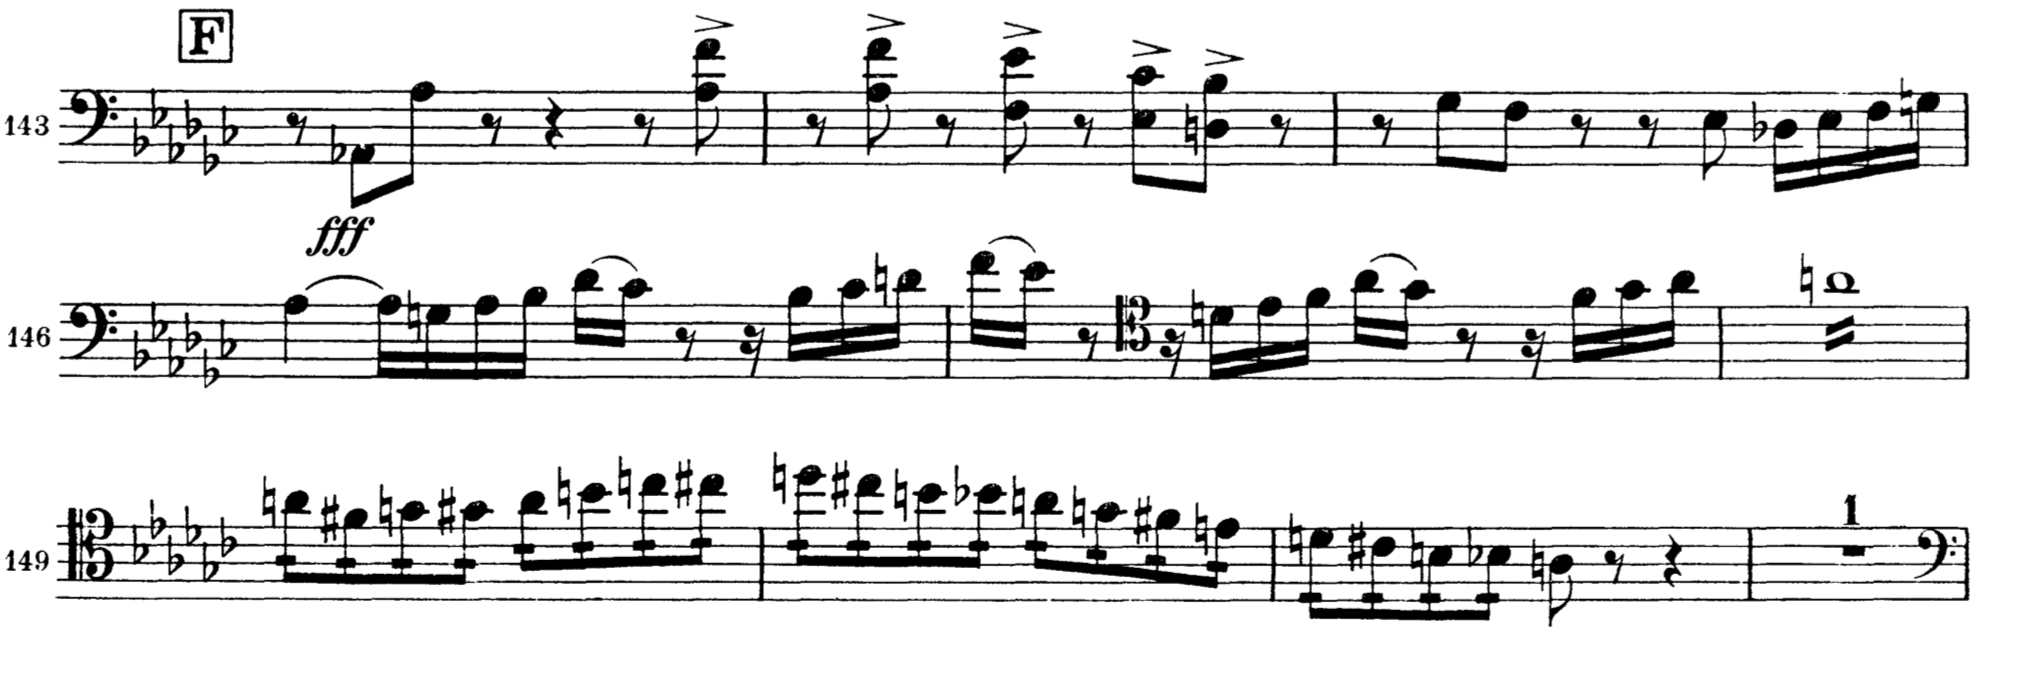 Cello Sight Reading 1.png